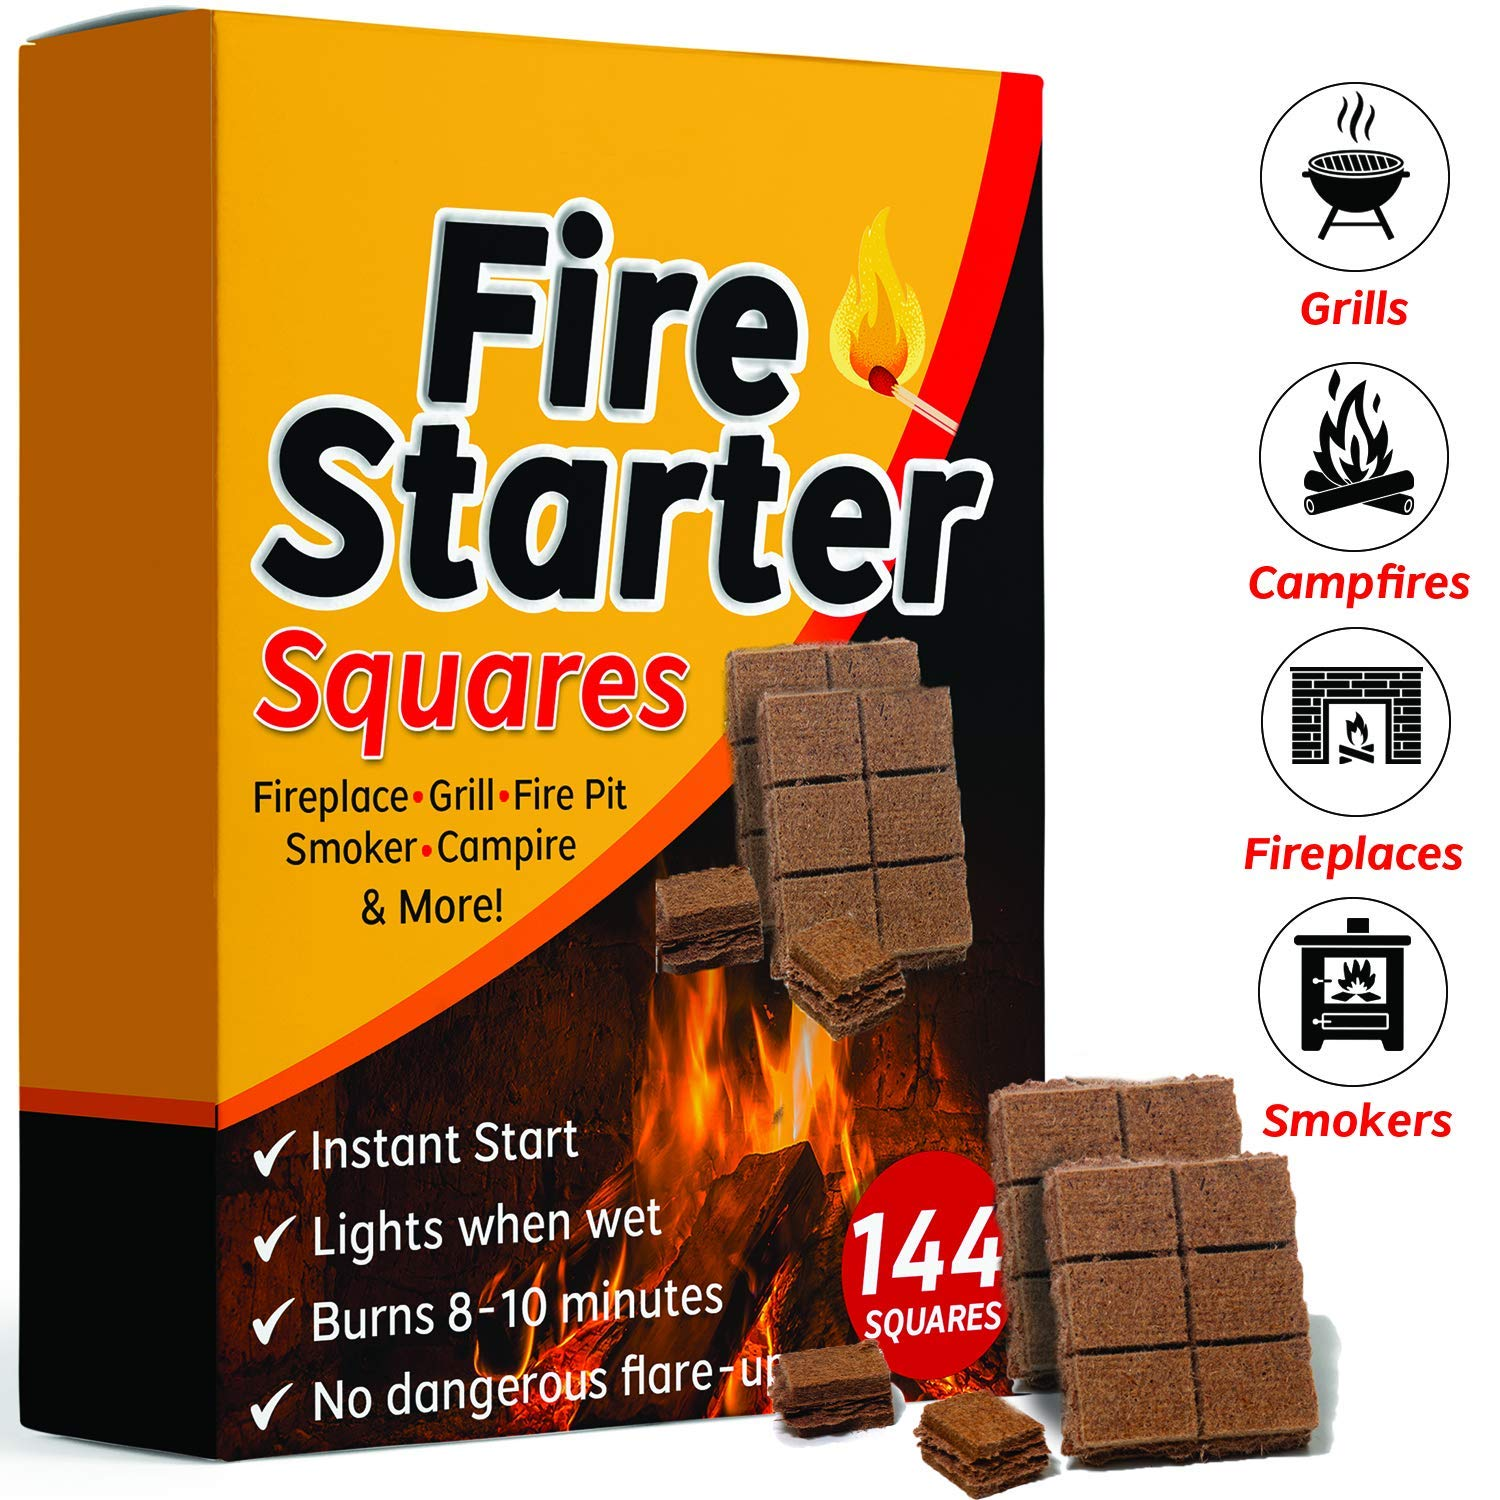 Bangerz Sunz Fire Starter Squares 144, Fire Starters for Fireplace, Wood Stove & Grill, Camp Fire Pit Charcoal Starters 50B, USA Made by Bangerz Sunz